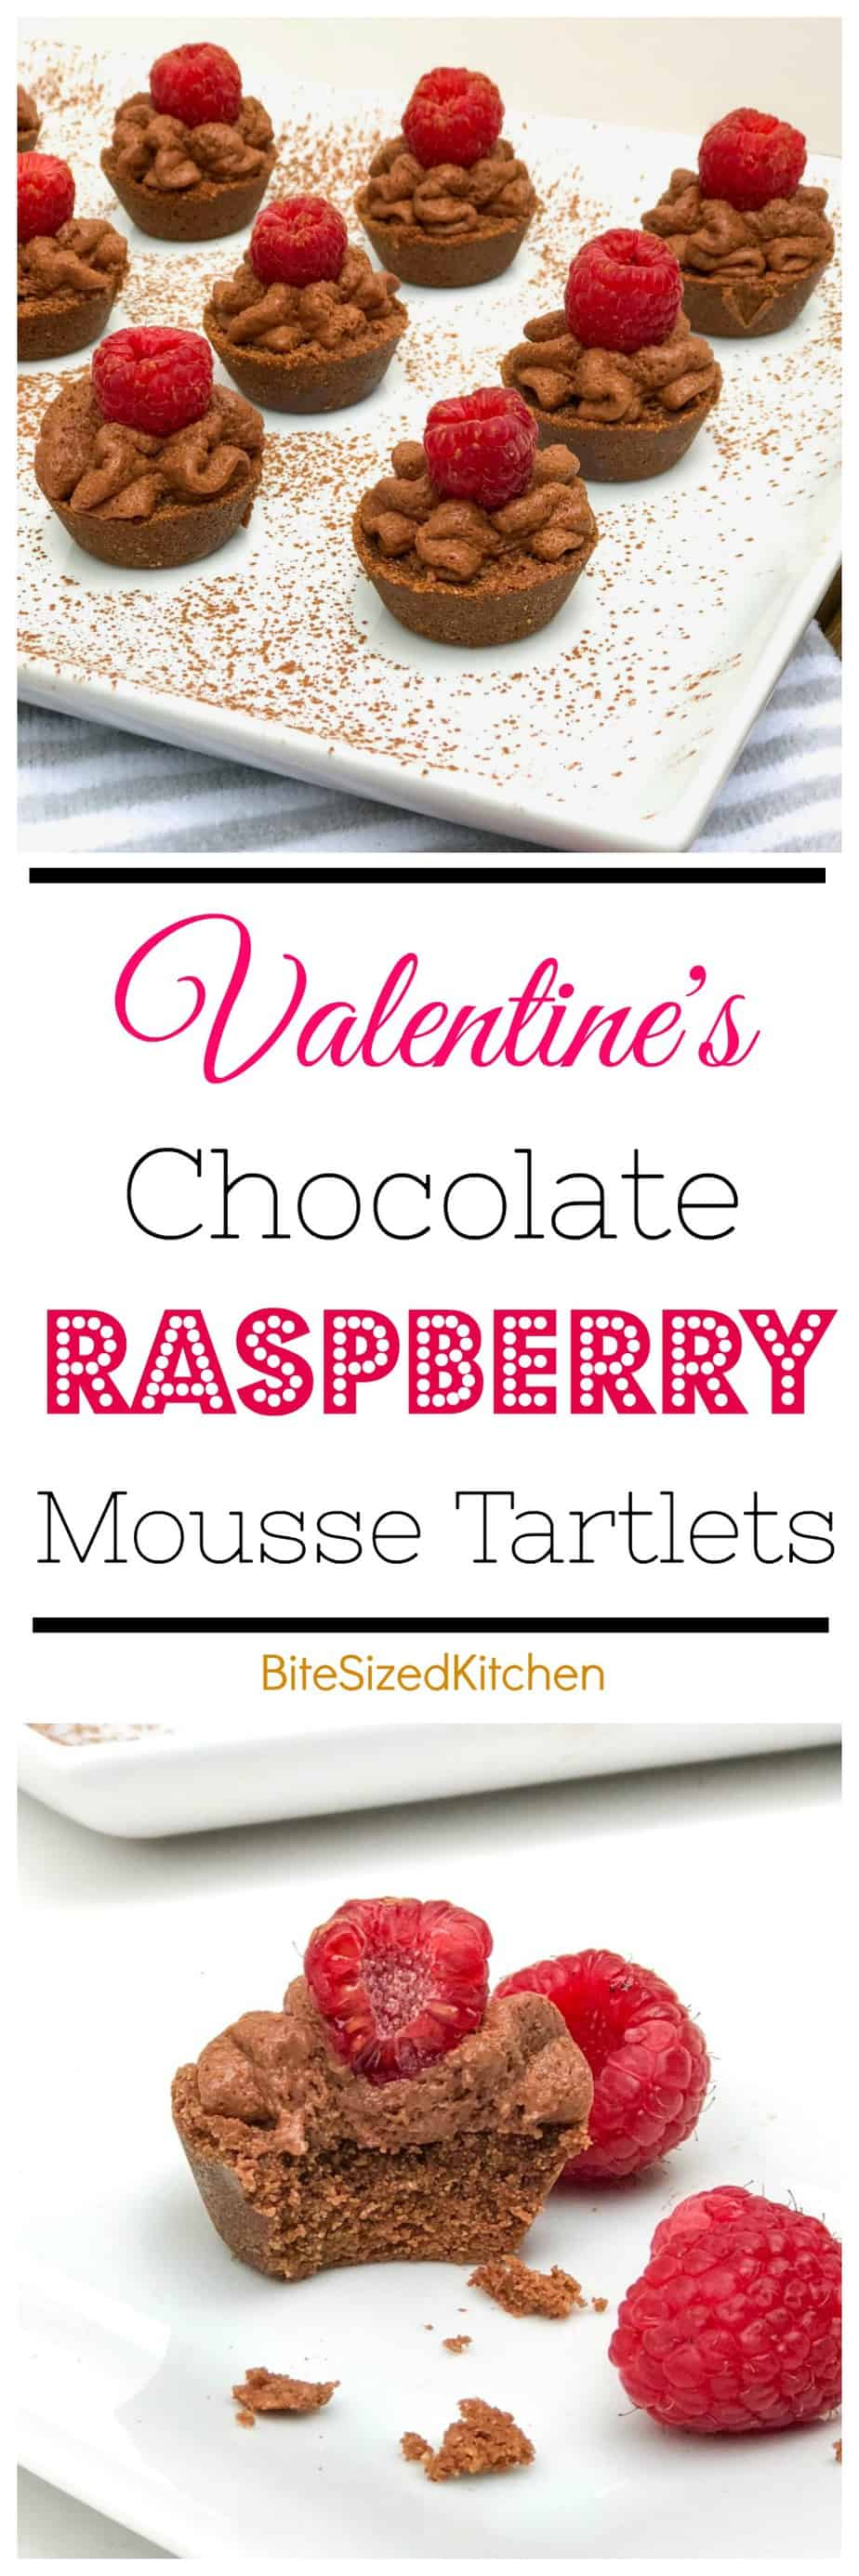 Quick Easy No Bake Chocolate Mousse Dessert Tarts with Raspberry! Perfect Valentine's Day Dessert for Two!